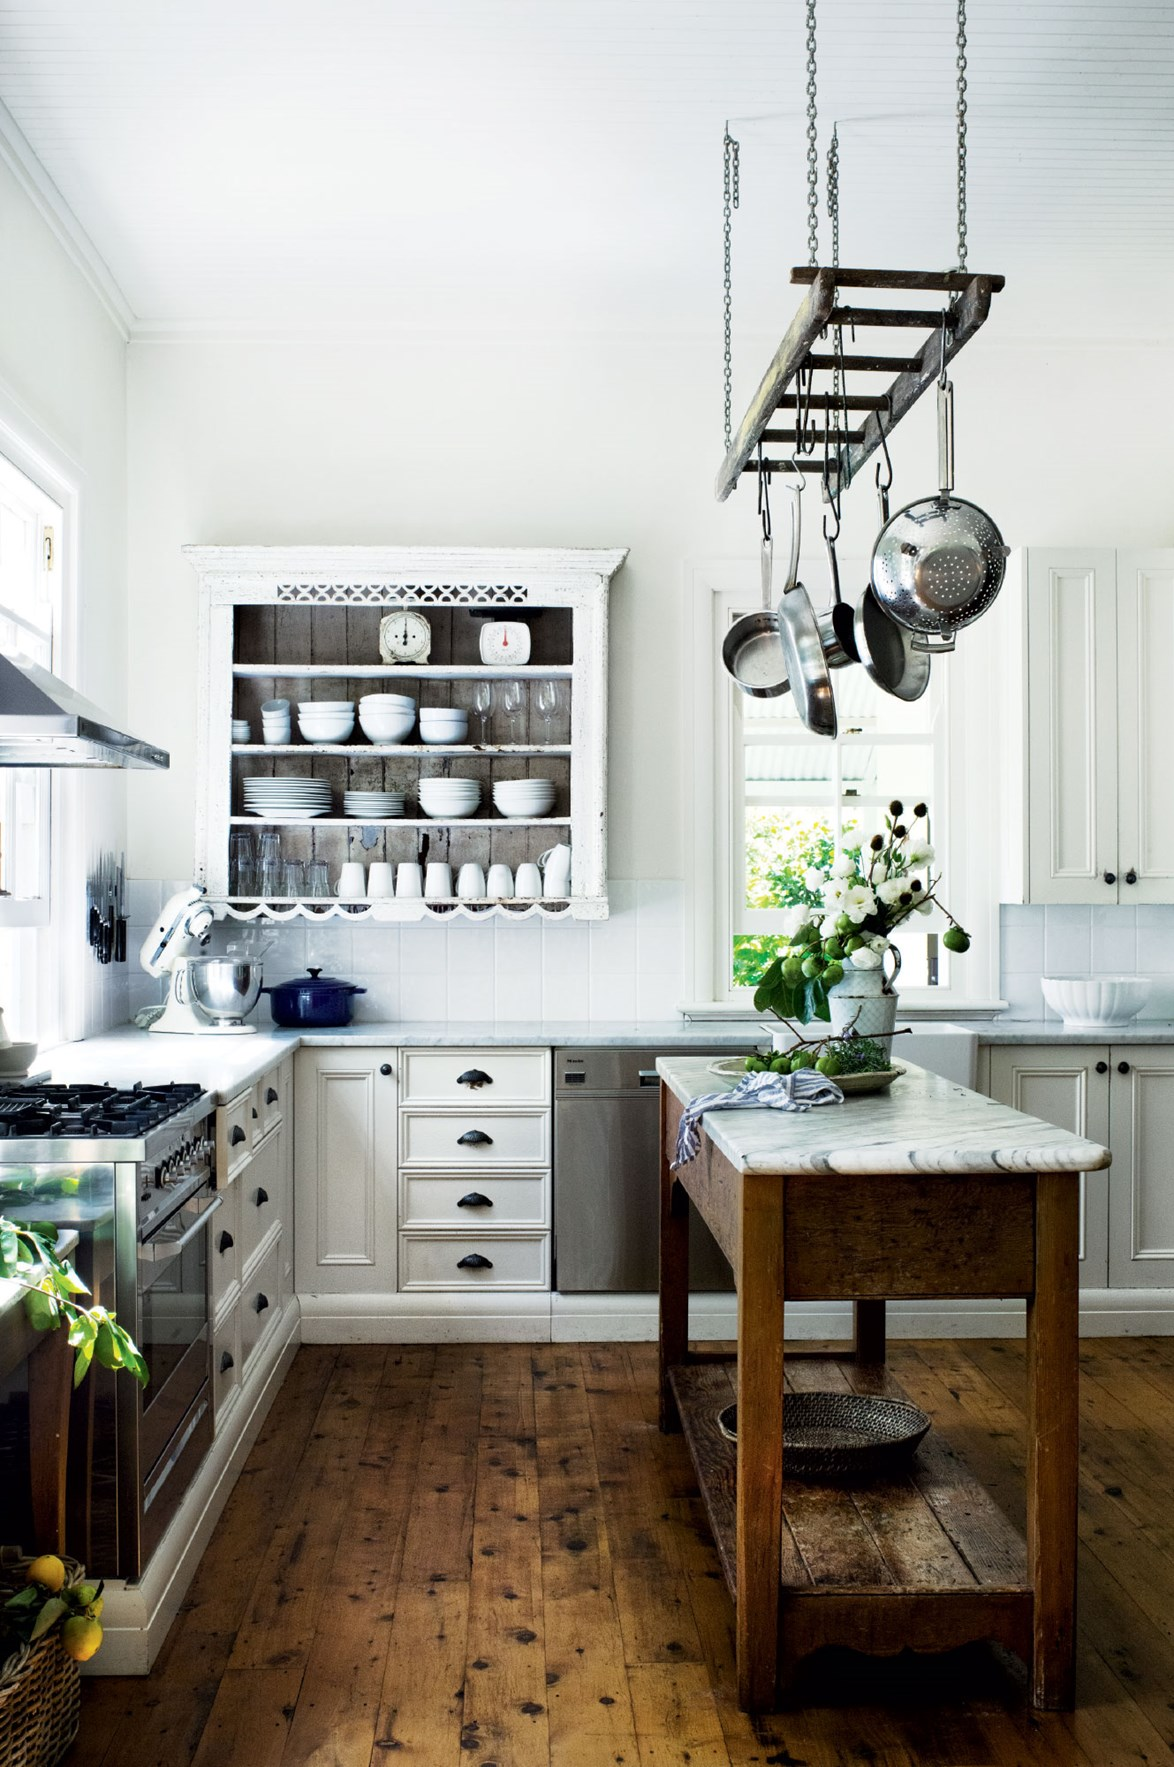 "The kitchen is undoubtedly the heart of [Willow Farm homestead](https://www.homestolove.com.au/willow-farm-homestead-13727|target=""_blank"") in Berry. The kitchen is the place where Amy Willesee and her daughters often gather to bake goodies for both special occasions and just for fun. Willow Farm also operates as an accommodation, wedding and event space."